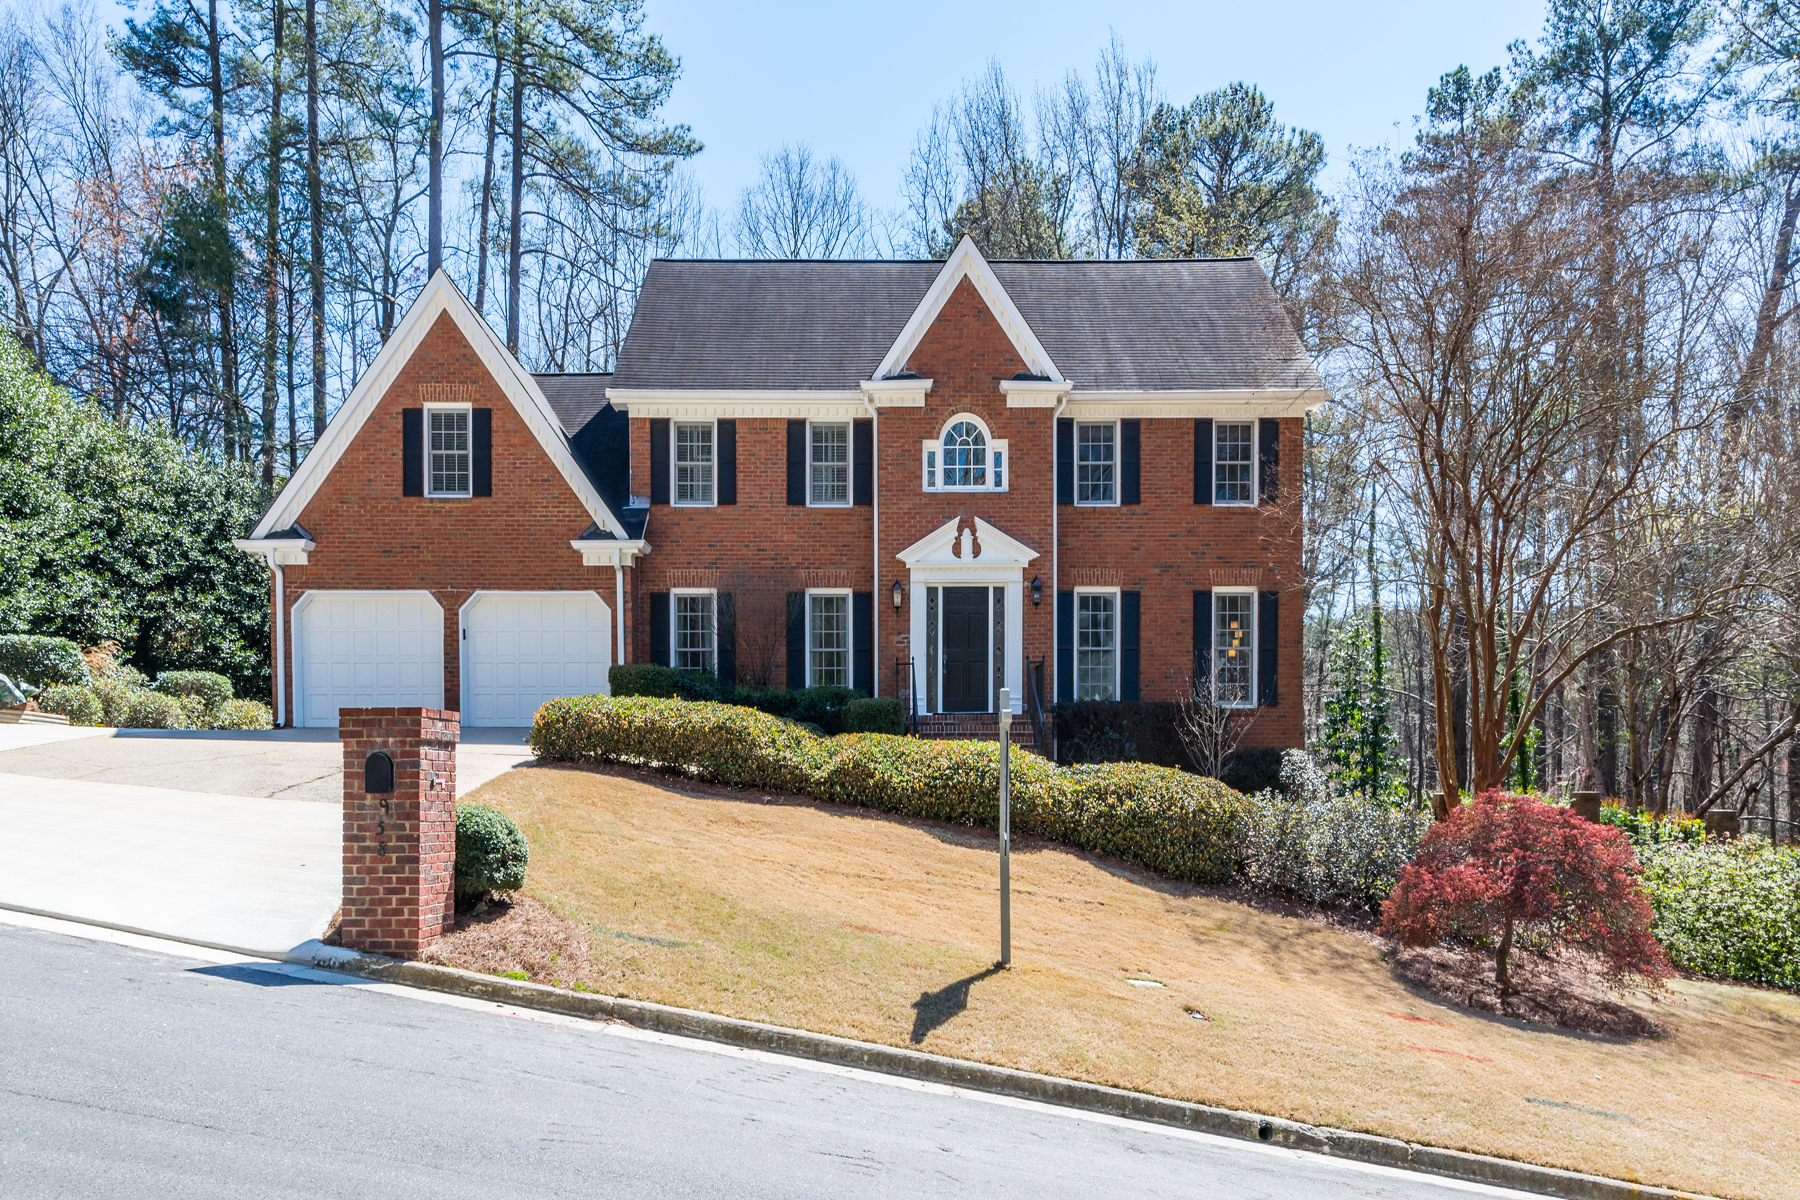 Casa para uma família para Venda às Traditional Home On Ideal Lot In Popular Swim/Tennis Community 958 Byrnwyck Road Atlanta, Geórgia, 30319 Estados Unidos